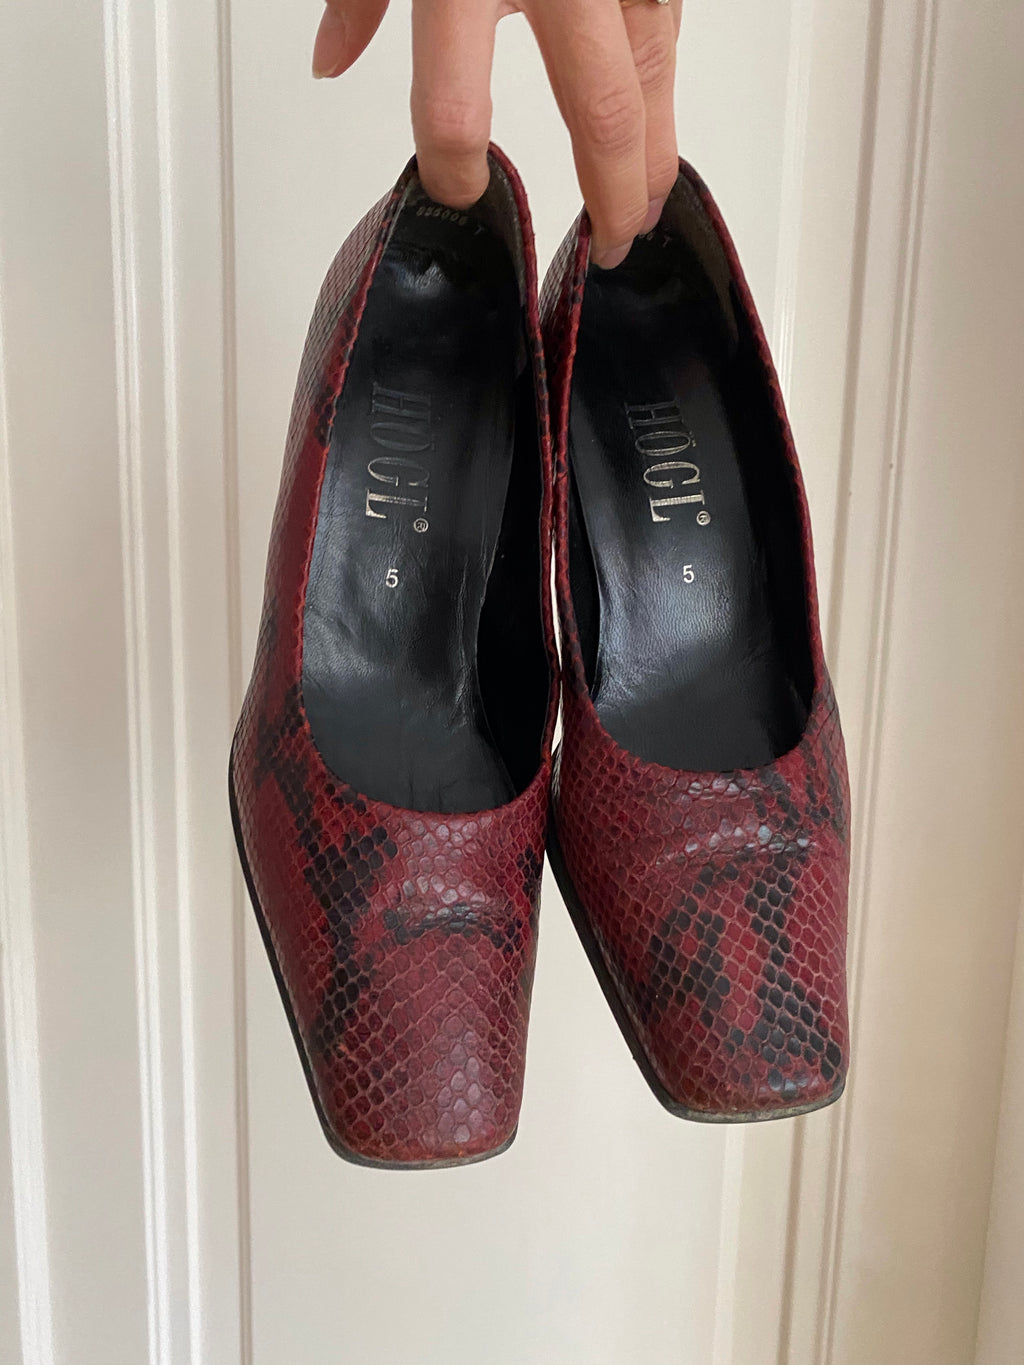 Högl Croc Leather Pumps